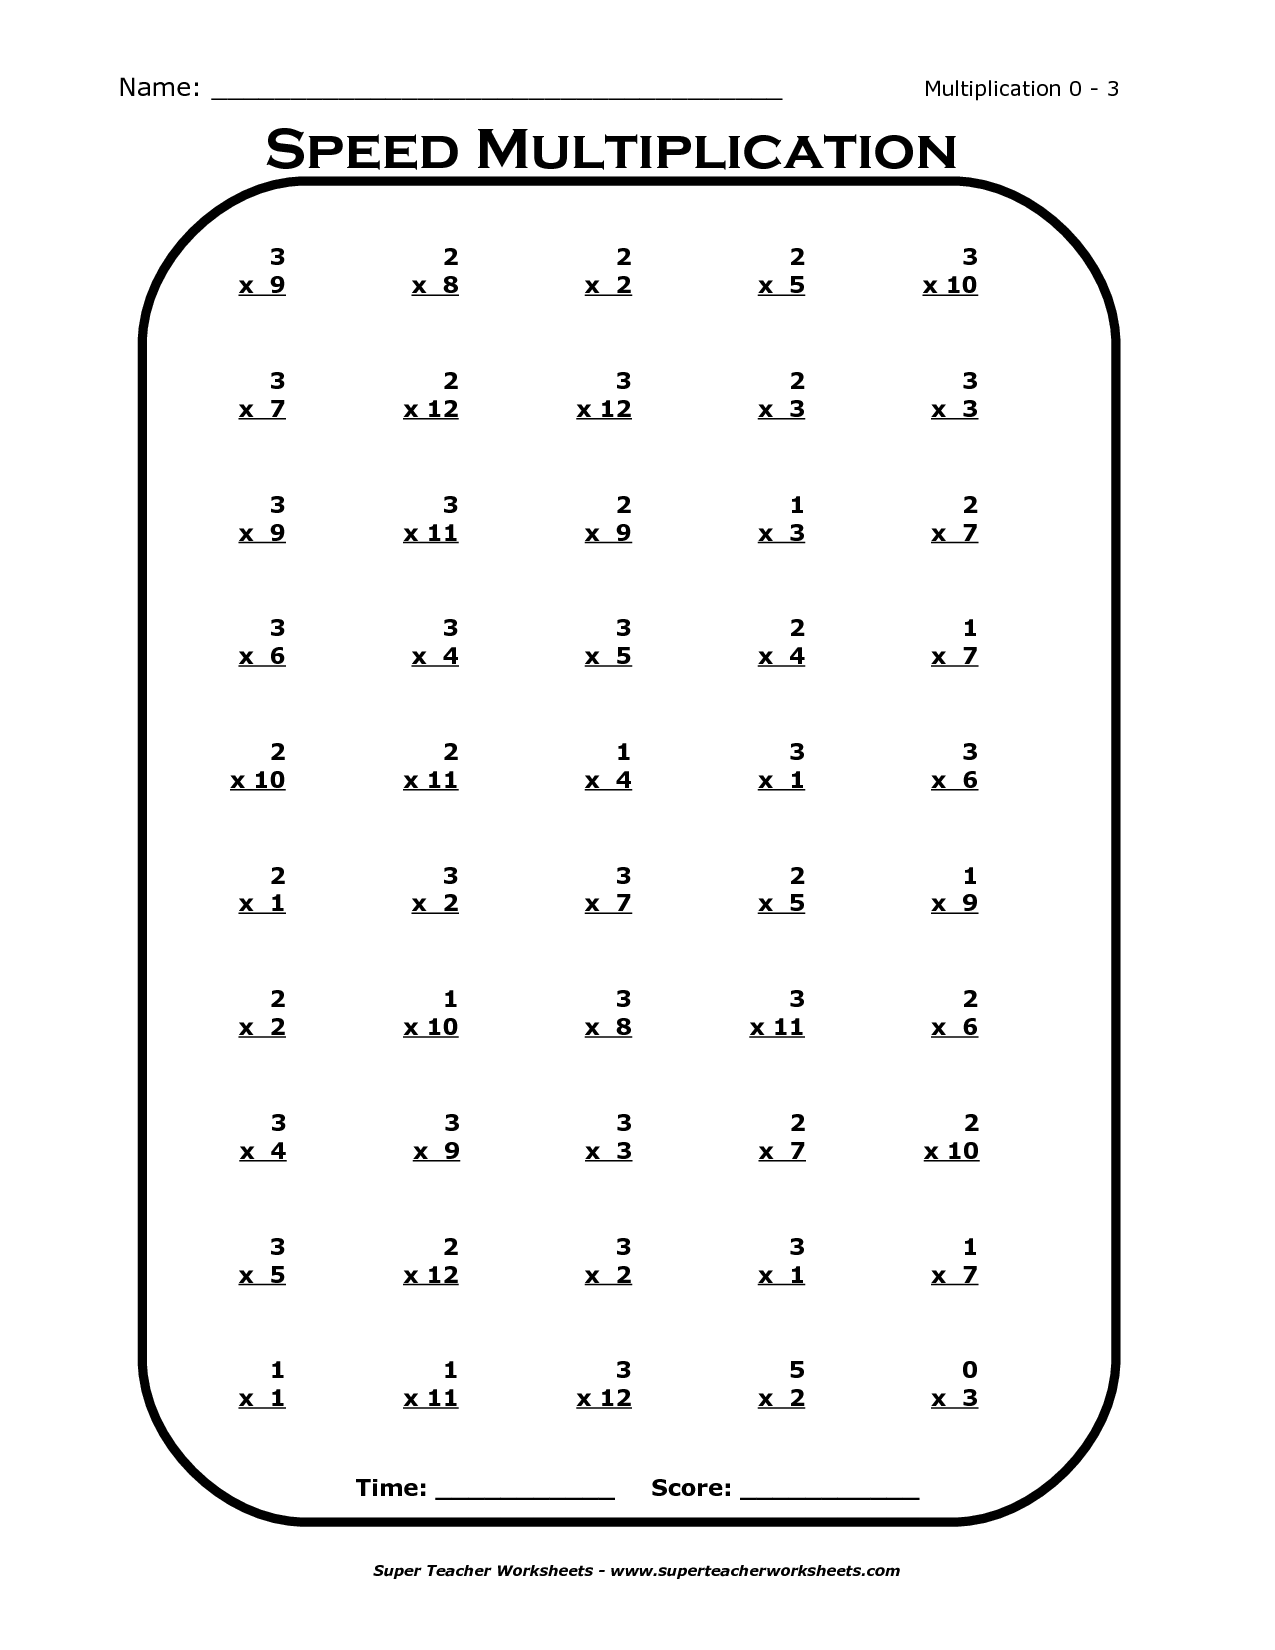 20 Times Table Worksheet